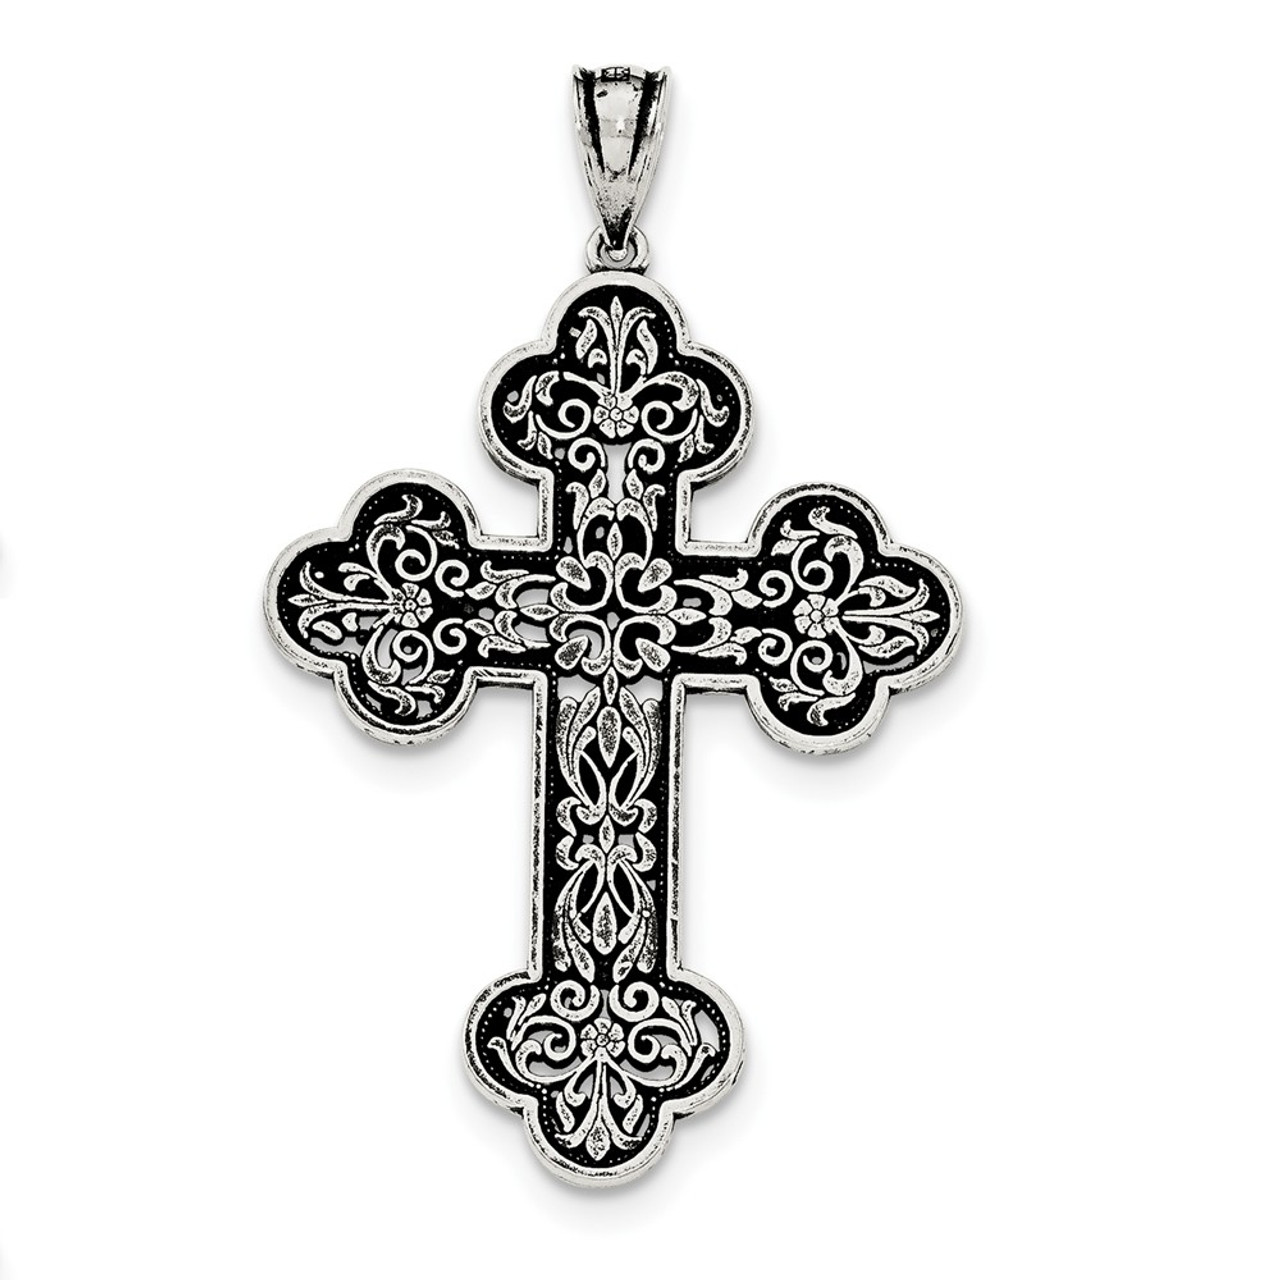 925 Sterling Silver Large Swirl Cross Charm with Necklace